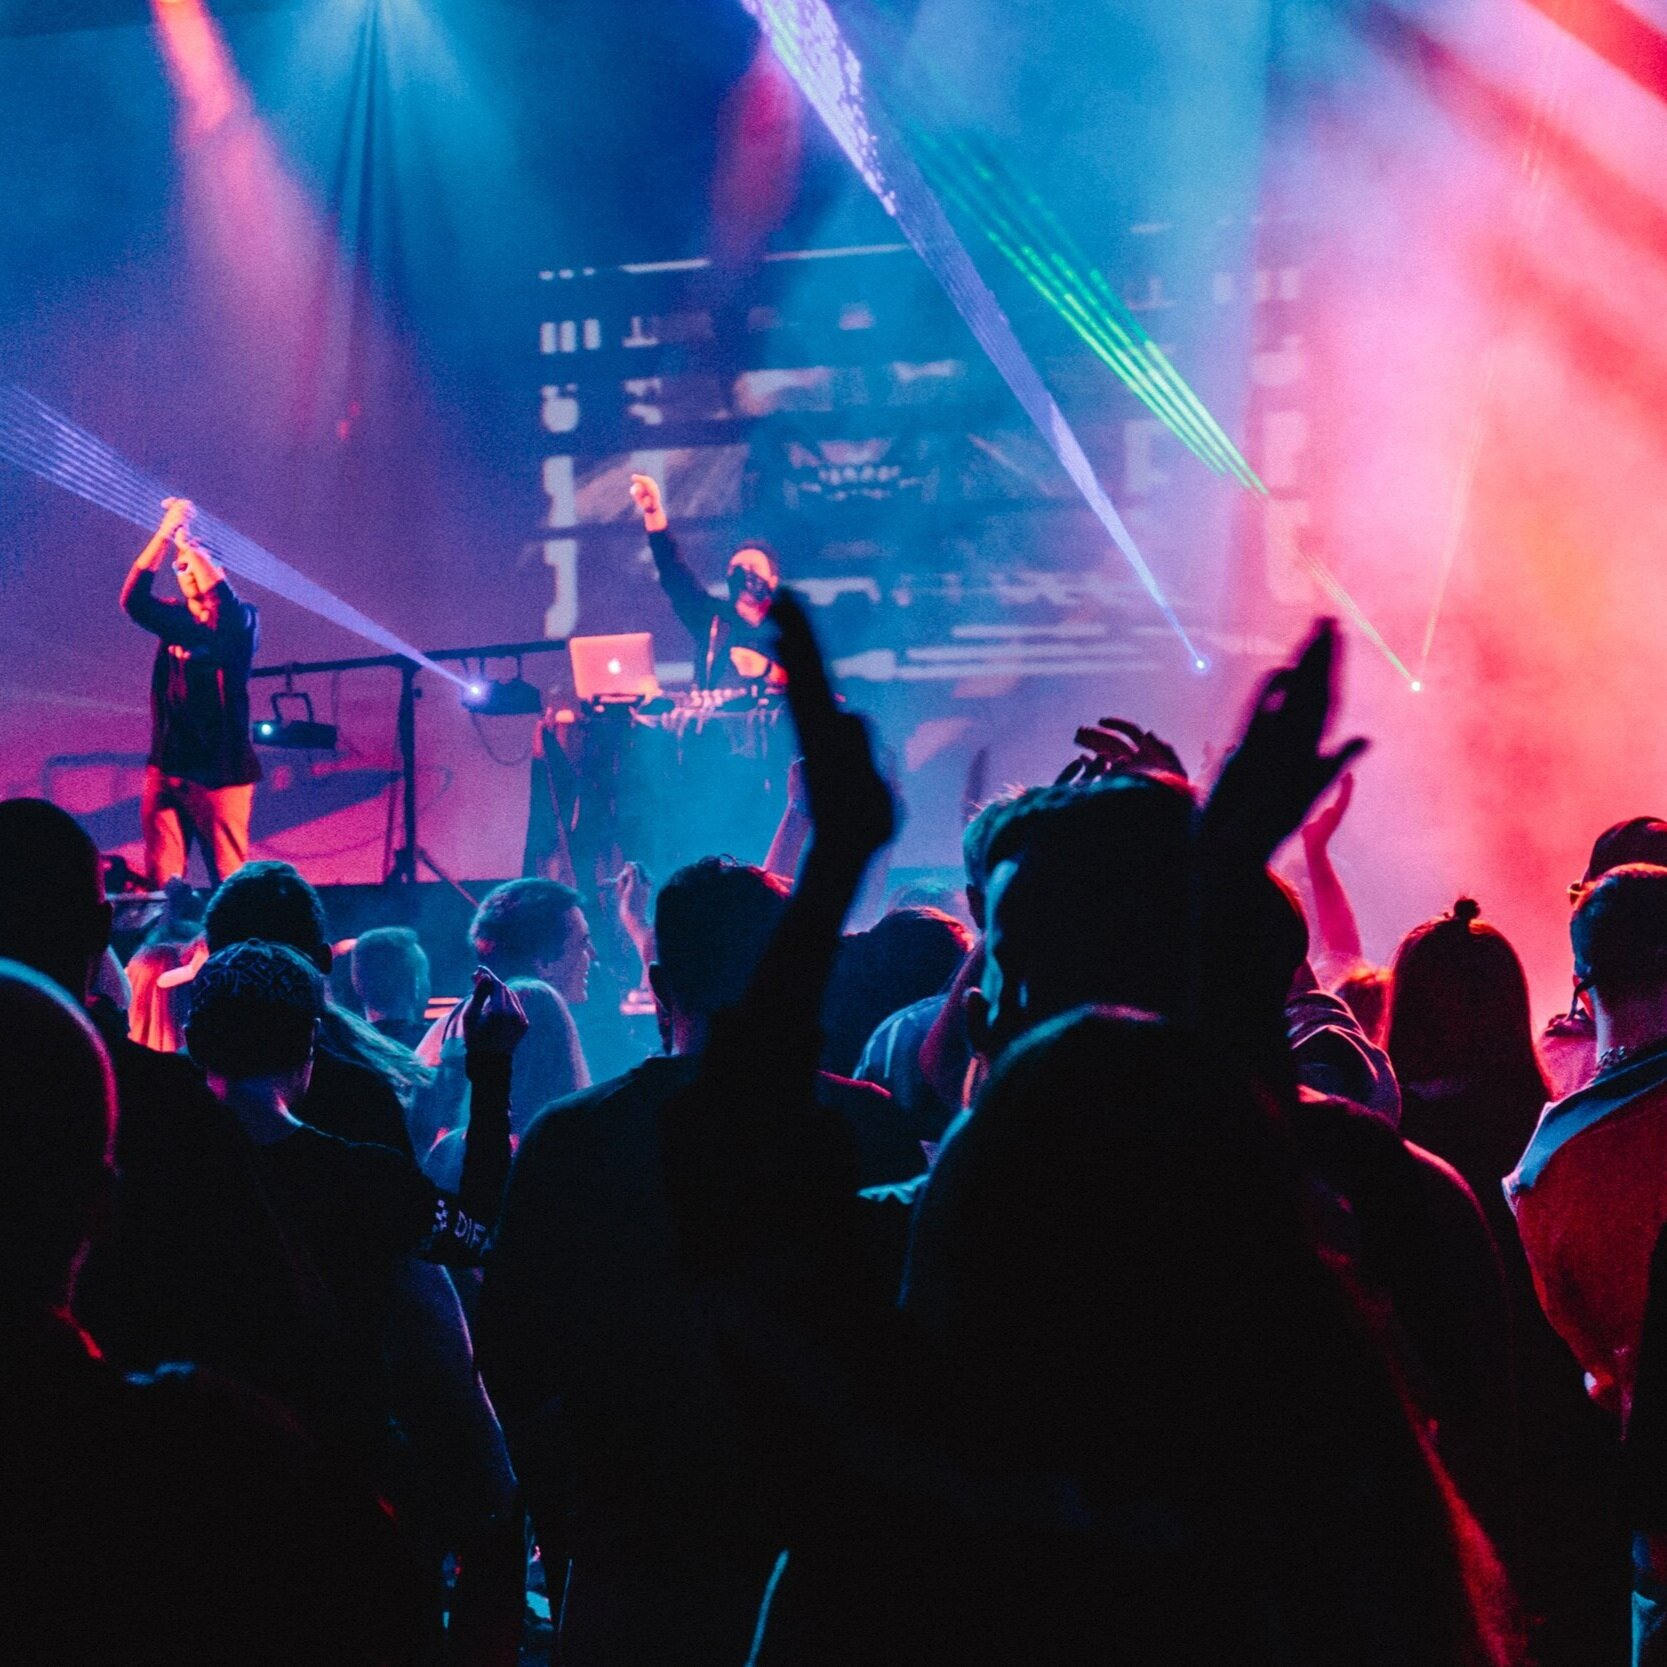 Nottingham Nightlife: - - Pub quiz at one of the many British pubs in Nottingham- Book a Gig at Rock City or Rescue Rooms- Lots of bars to enjoy around the city!- Get your dance on with Salsa Classes at Revs de Cuba!- Various Nightclubs with all types of music!